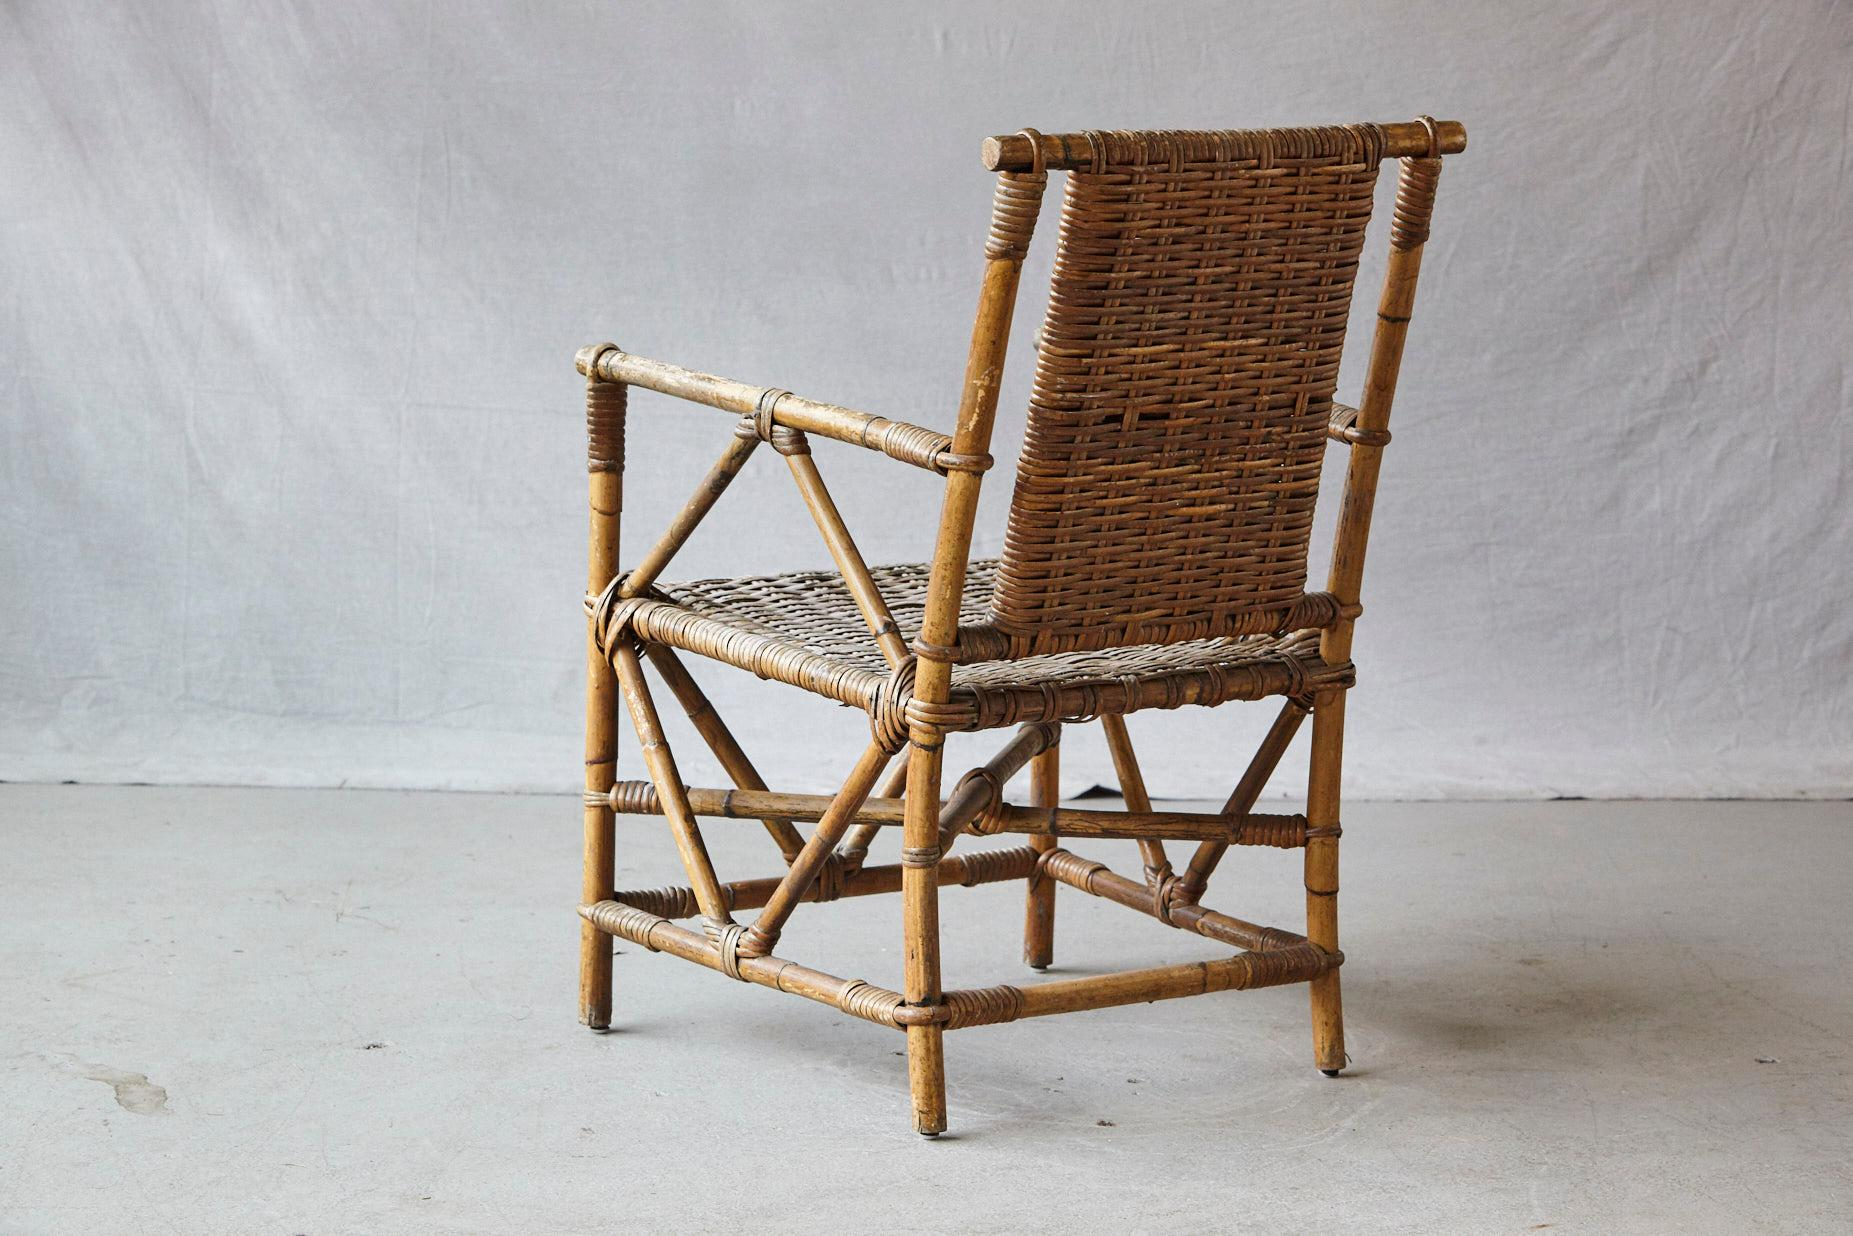 Early 20th Century English Antique Bamboo Armchair With Double Sided  Flat Woven Rattan Seats For